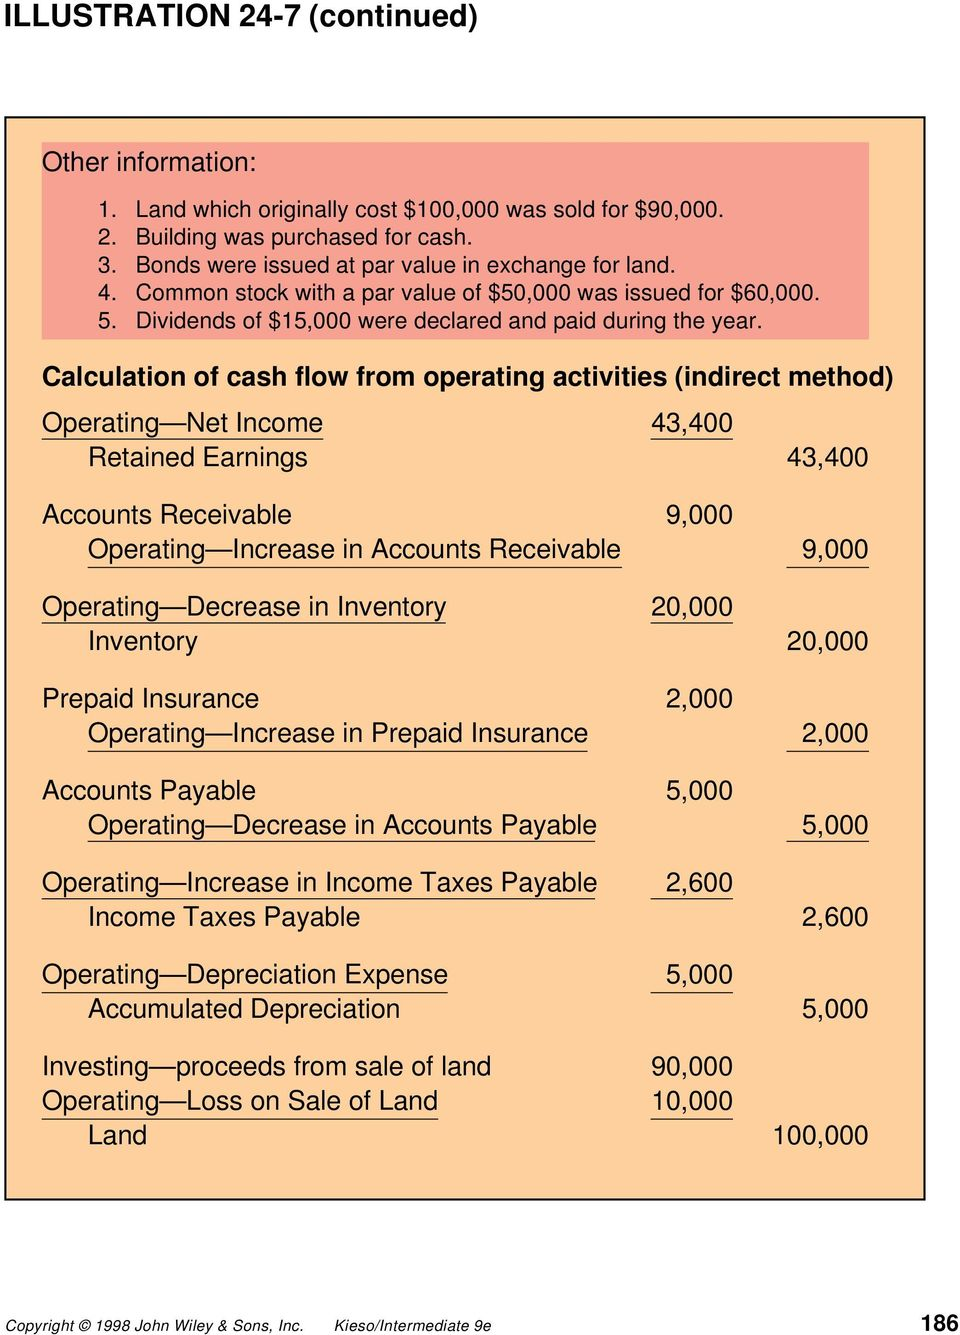 Calculation of cash flow from operating activities (indirect method) Operating Net Income 43,400 Retained Earnings 43,400 Accounts Receivable 9,000 Operating Increase in Accounts Receivable 9,000